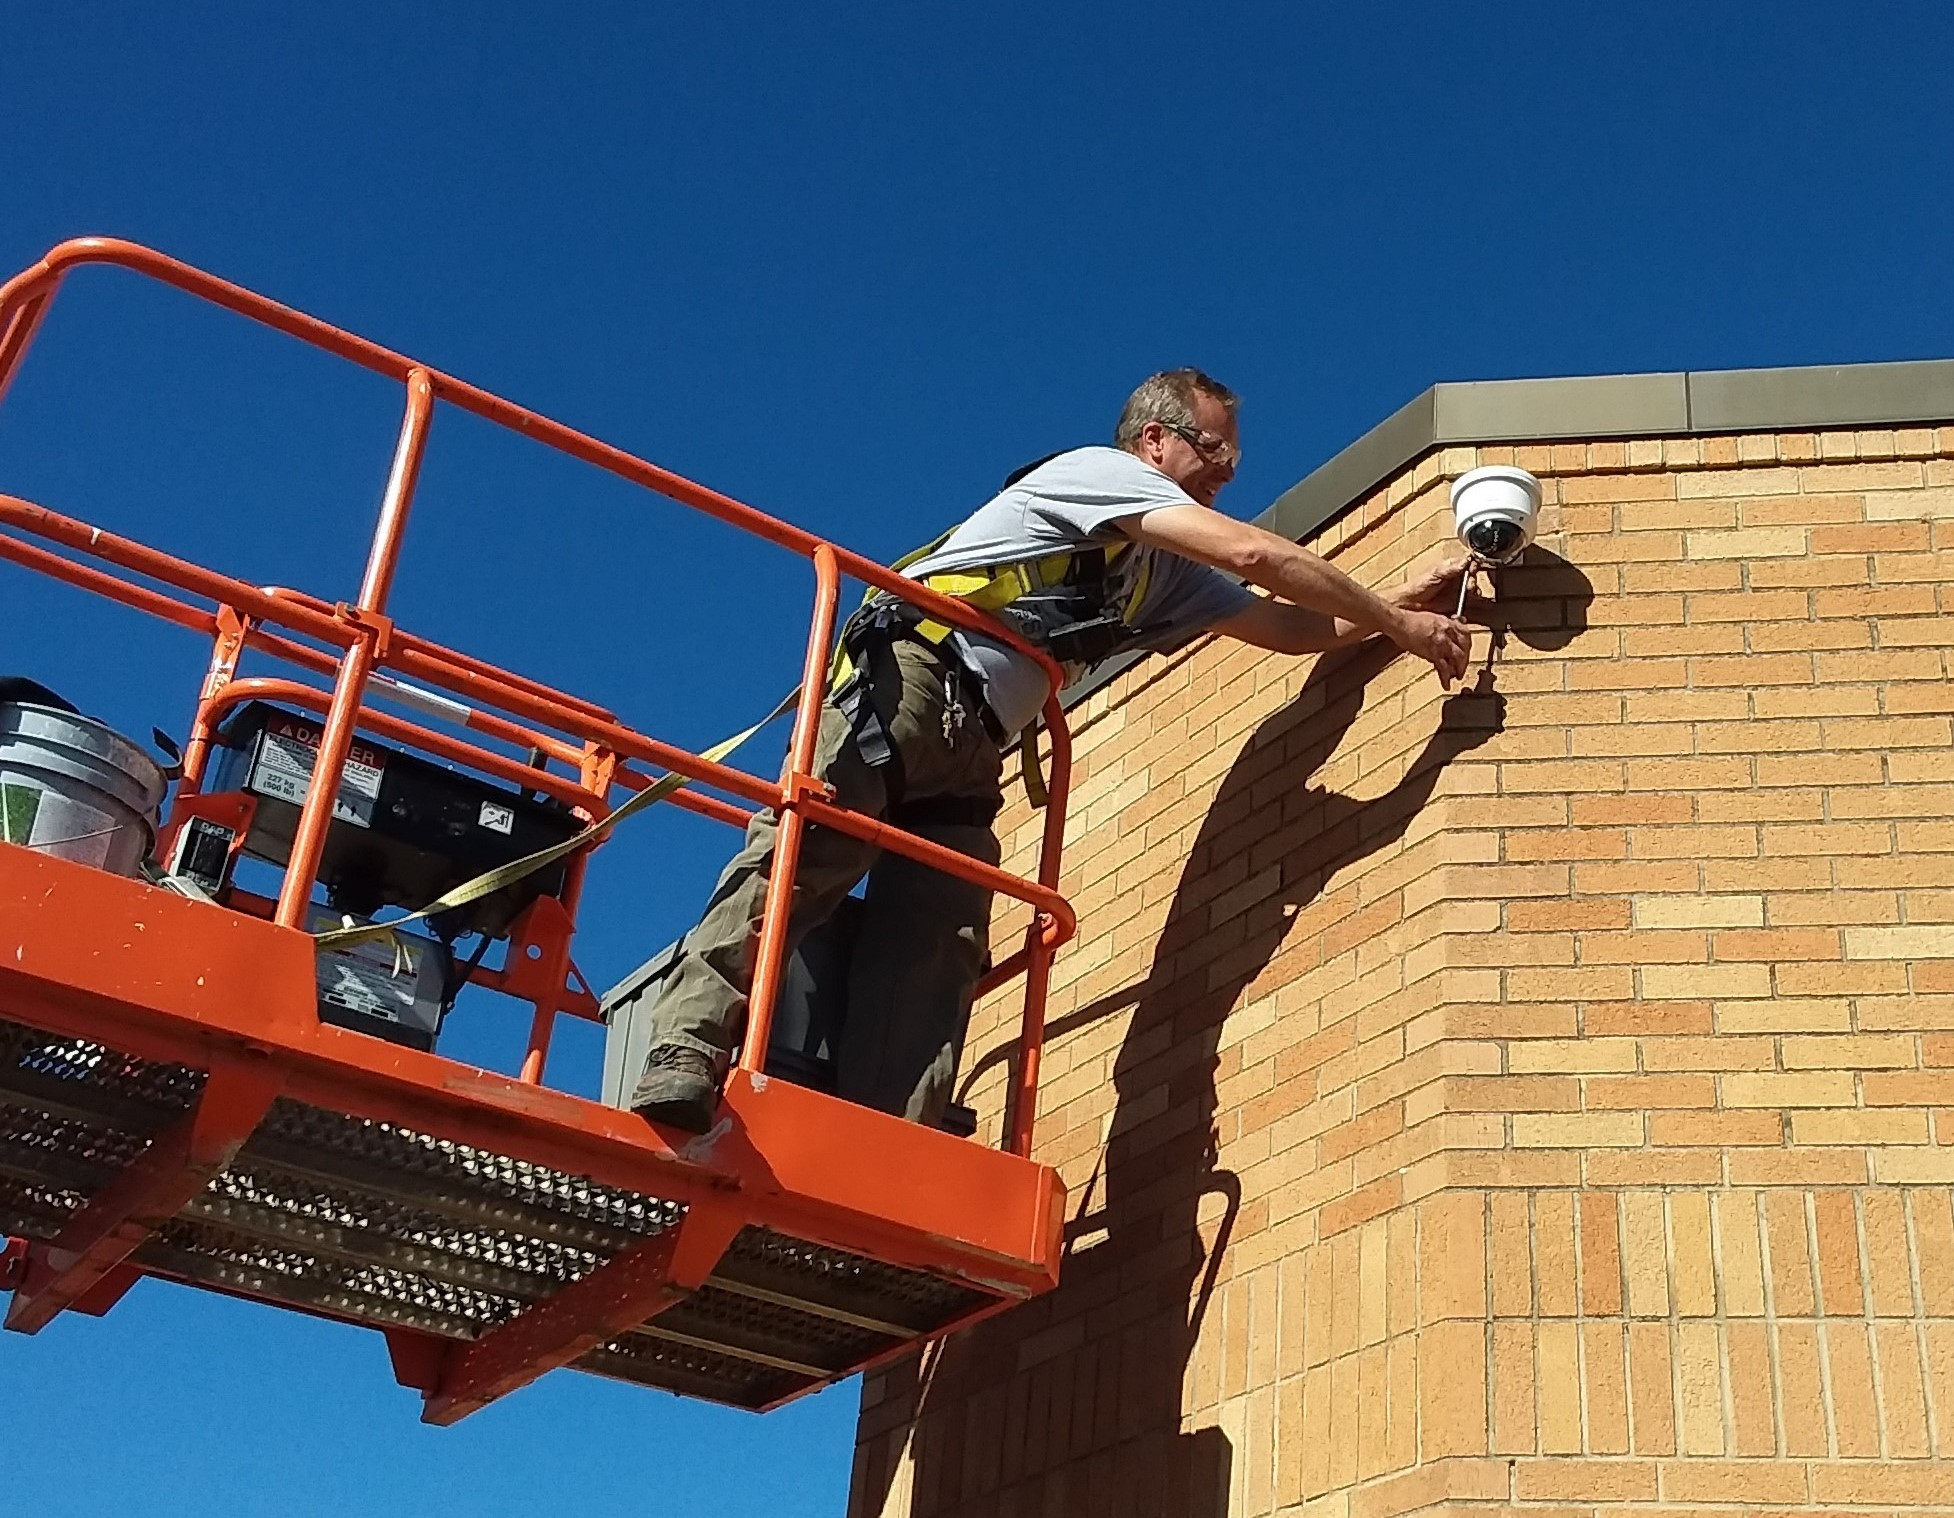 Lead Maintenance Staff Member Chris May on a lift making adjustments to an exterior light on the Chardon High School building